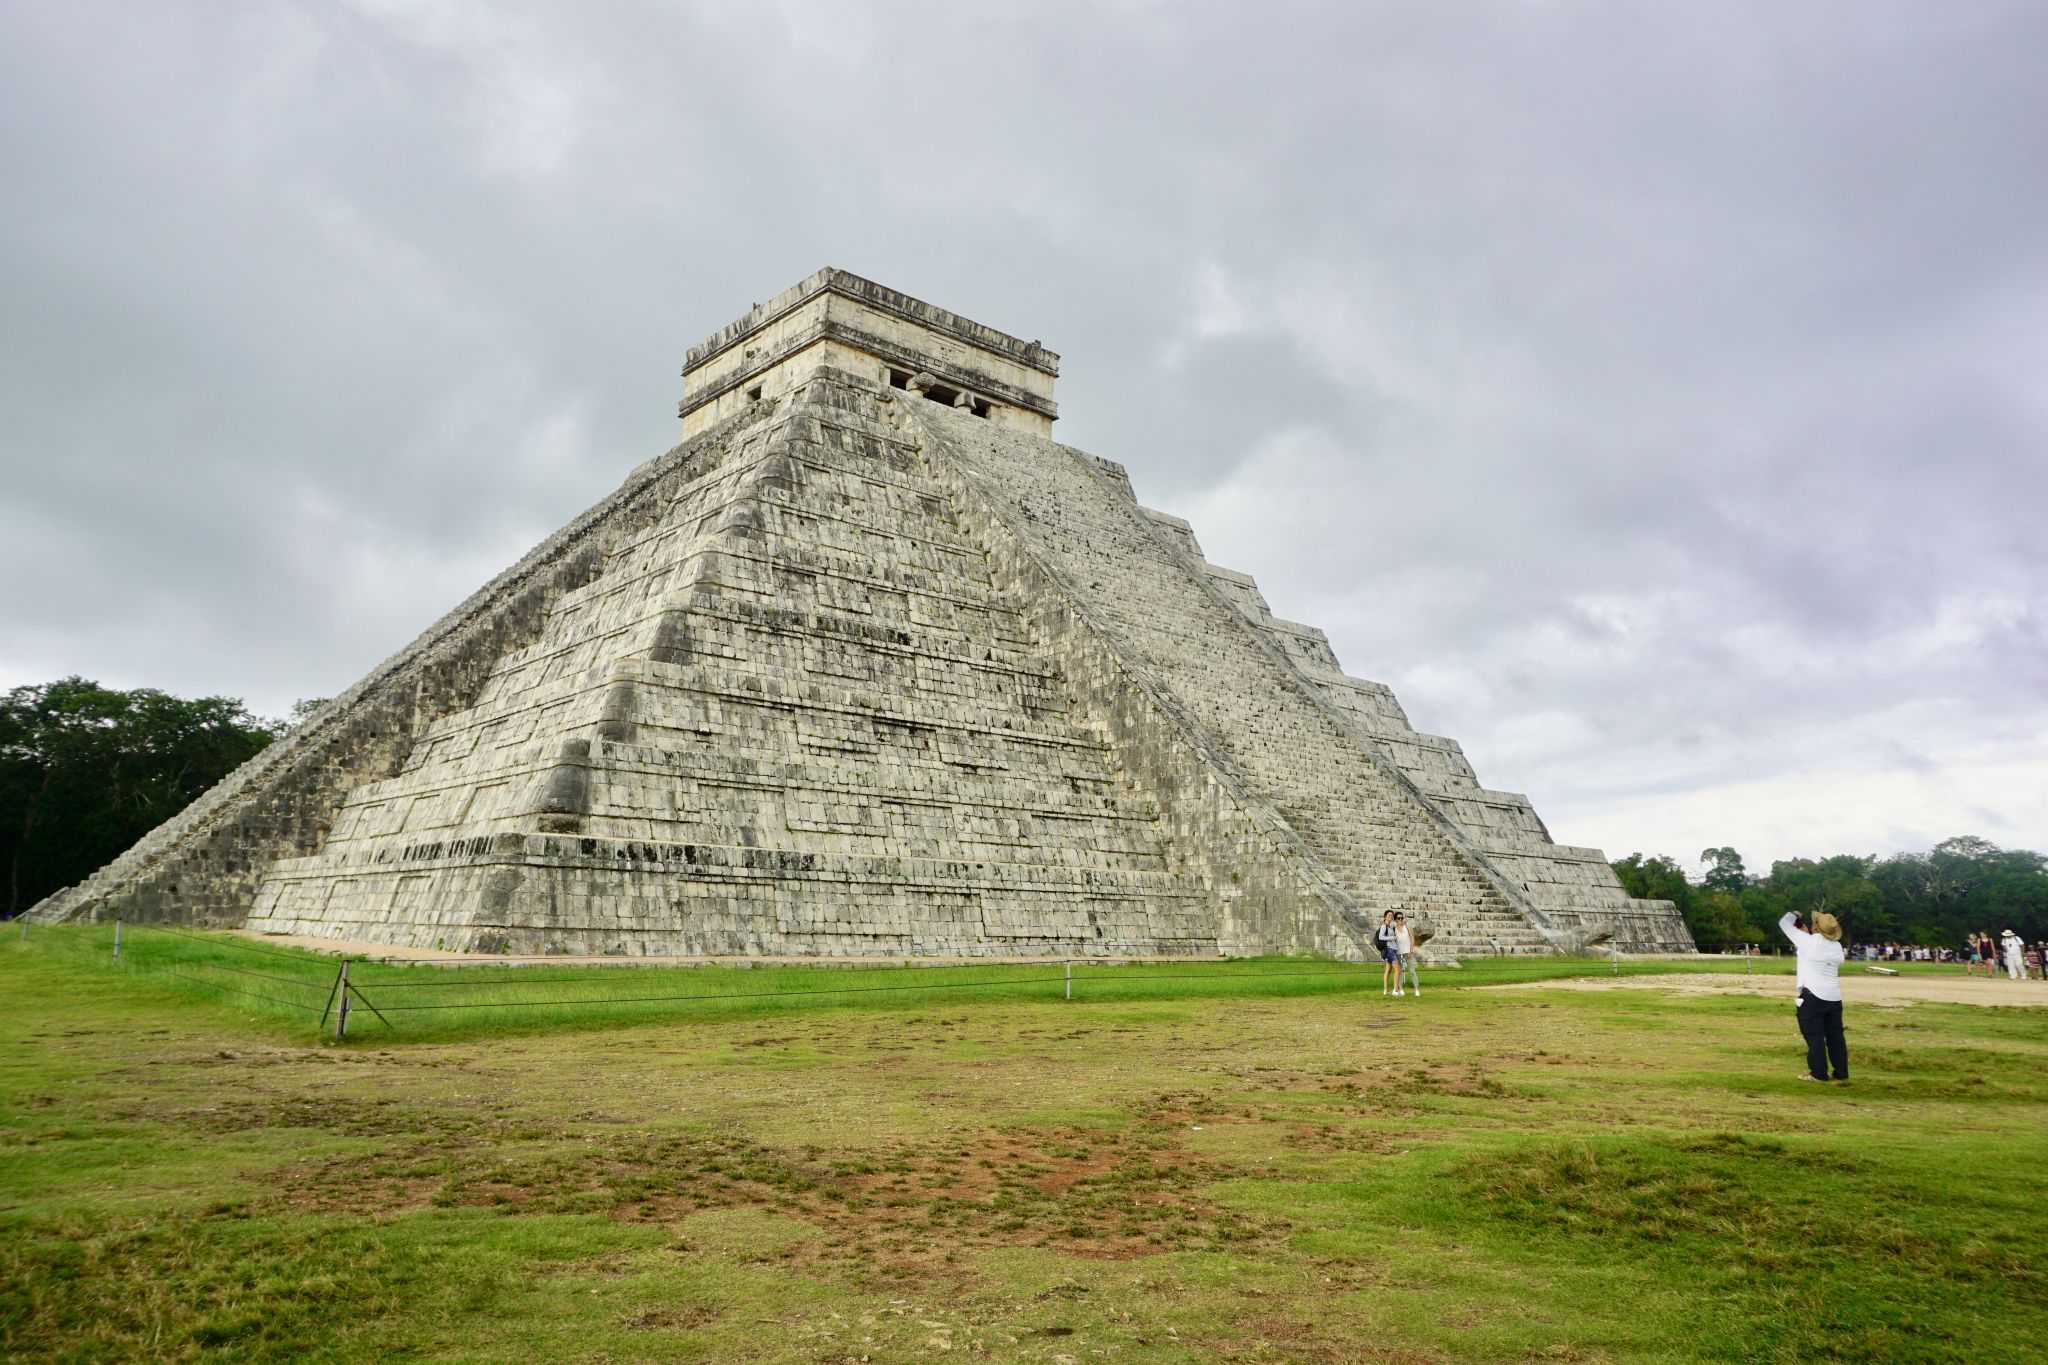 The Temple of Kukulkan is the symbol of Chichen Itza